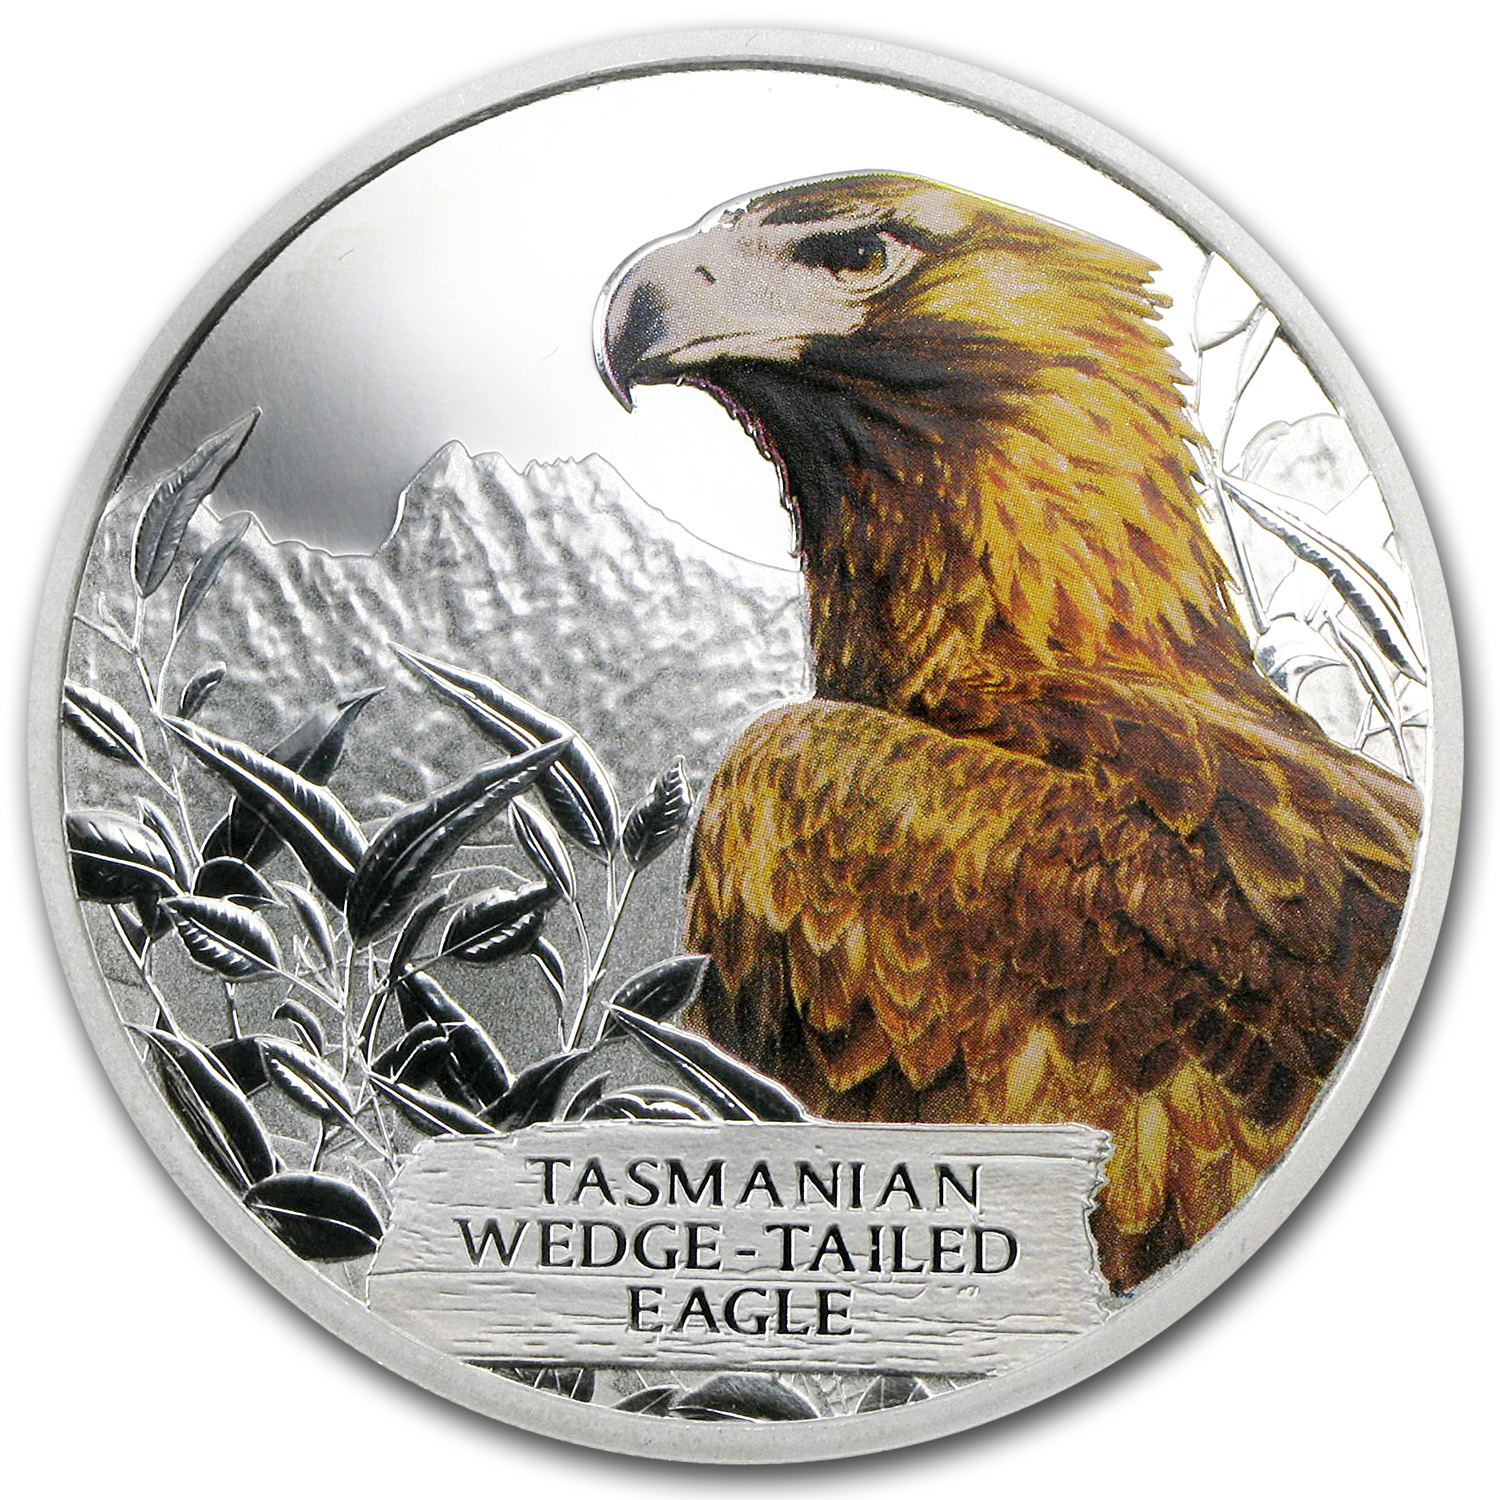 2012 Tuvalu 1 oz Silver Wedge-Tailed Eagle Proof